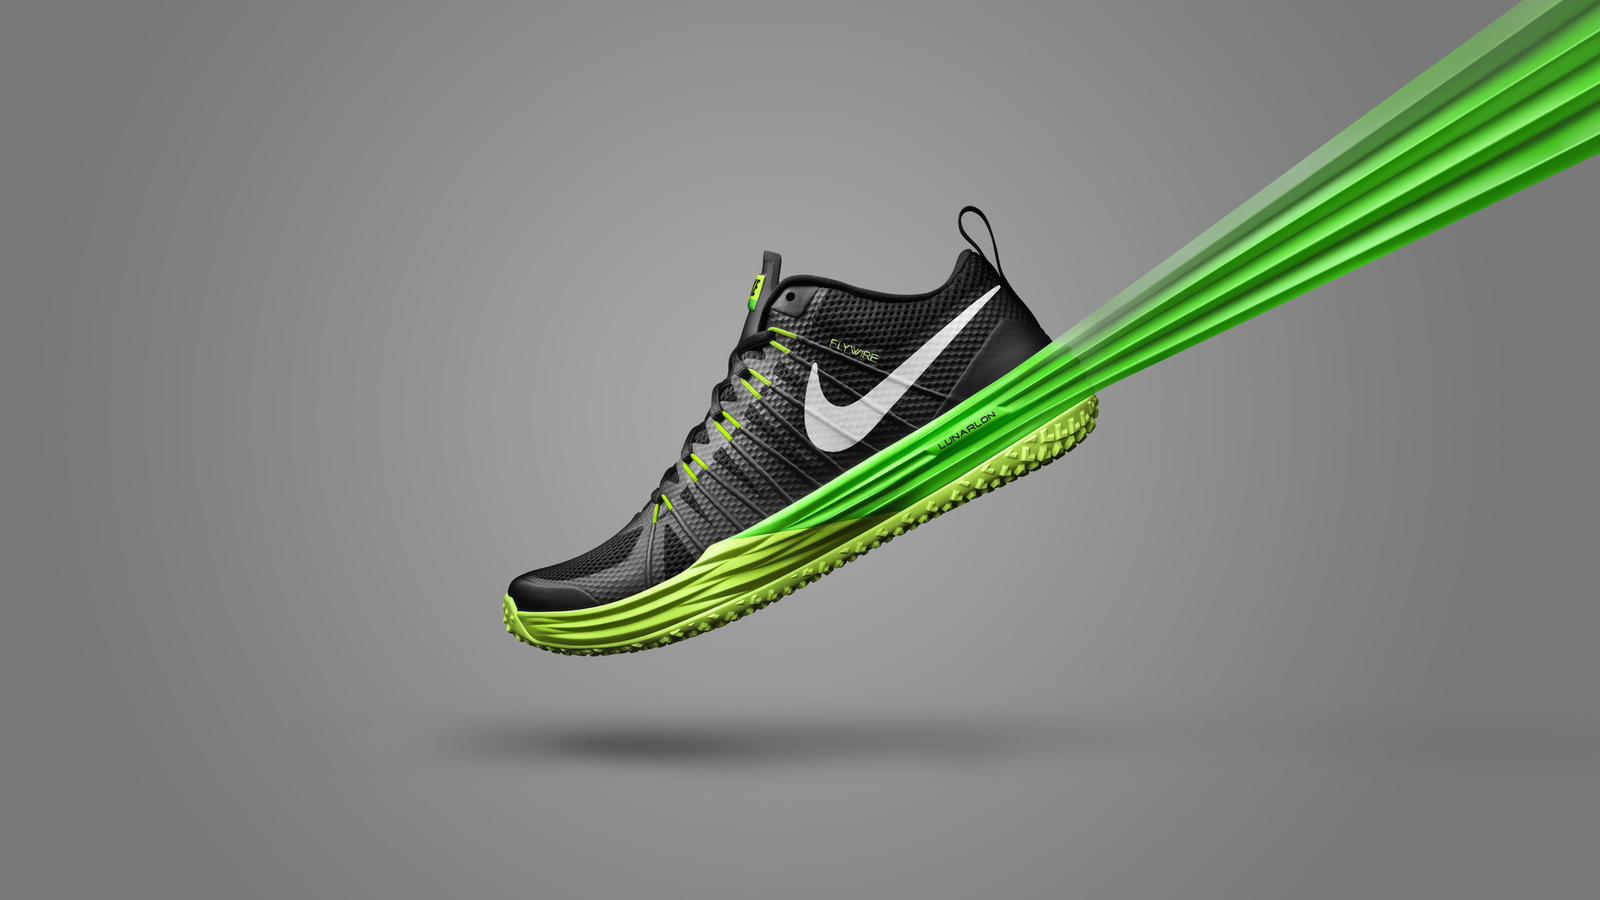 25 Best Nike Flywire images | Nike, Shoes, Sneakers nike